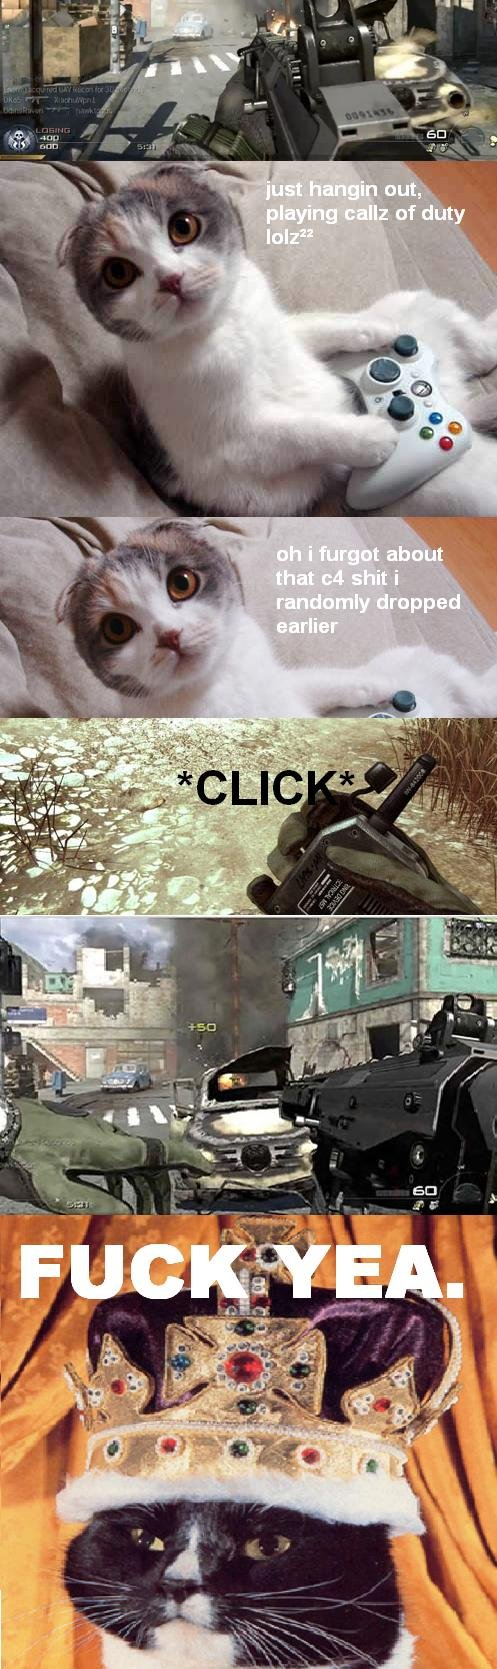 yea cat; c4 kill. lolcat plays cod... it would of been less fake if on the screen where it shows him getting +50 their wasnt a little FRAG GRENADE symbol instead of a C4 symbol!